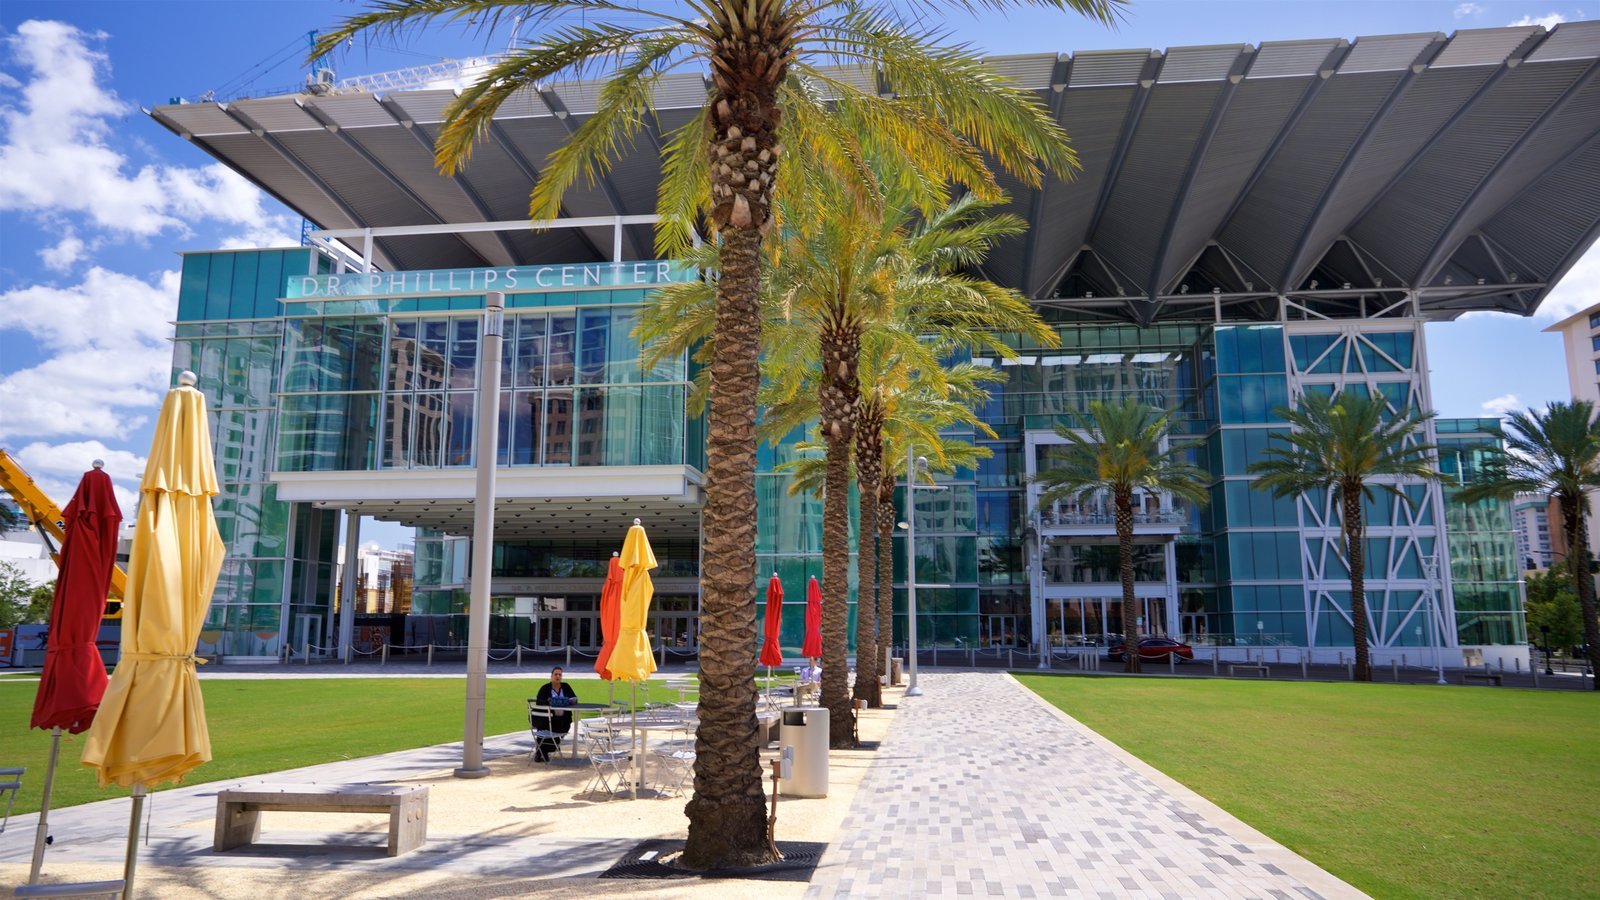 Dr. Phillips Center for the Performing Arts featuring modern architecture